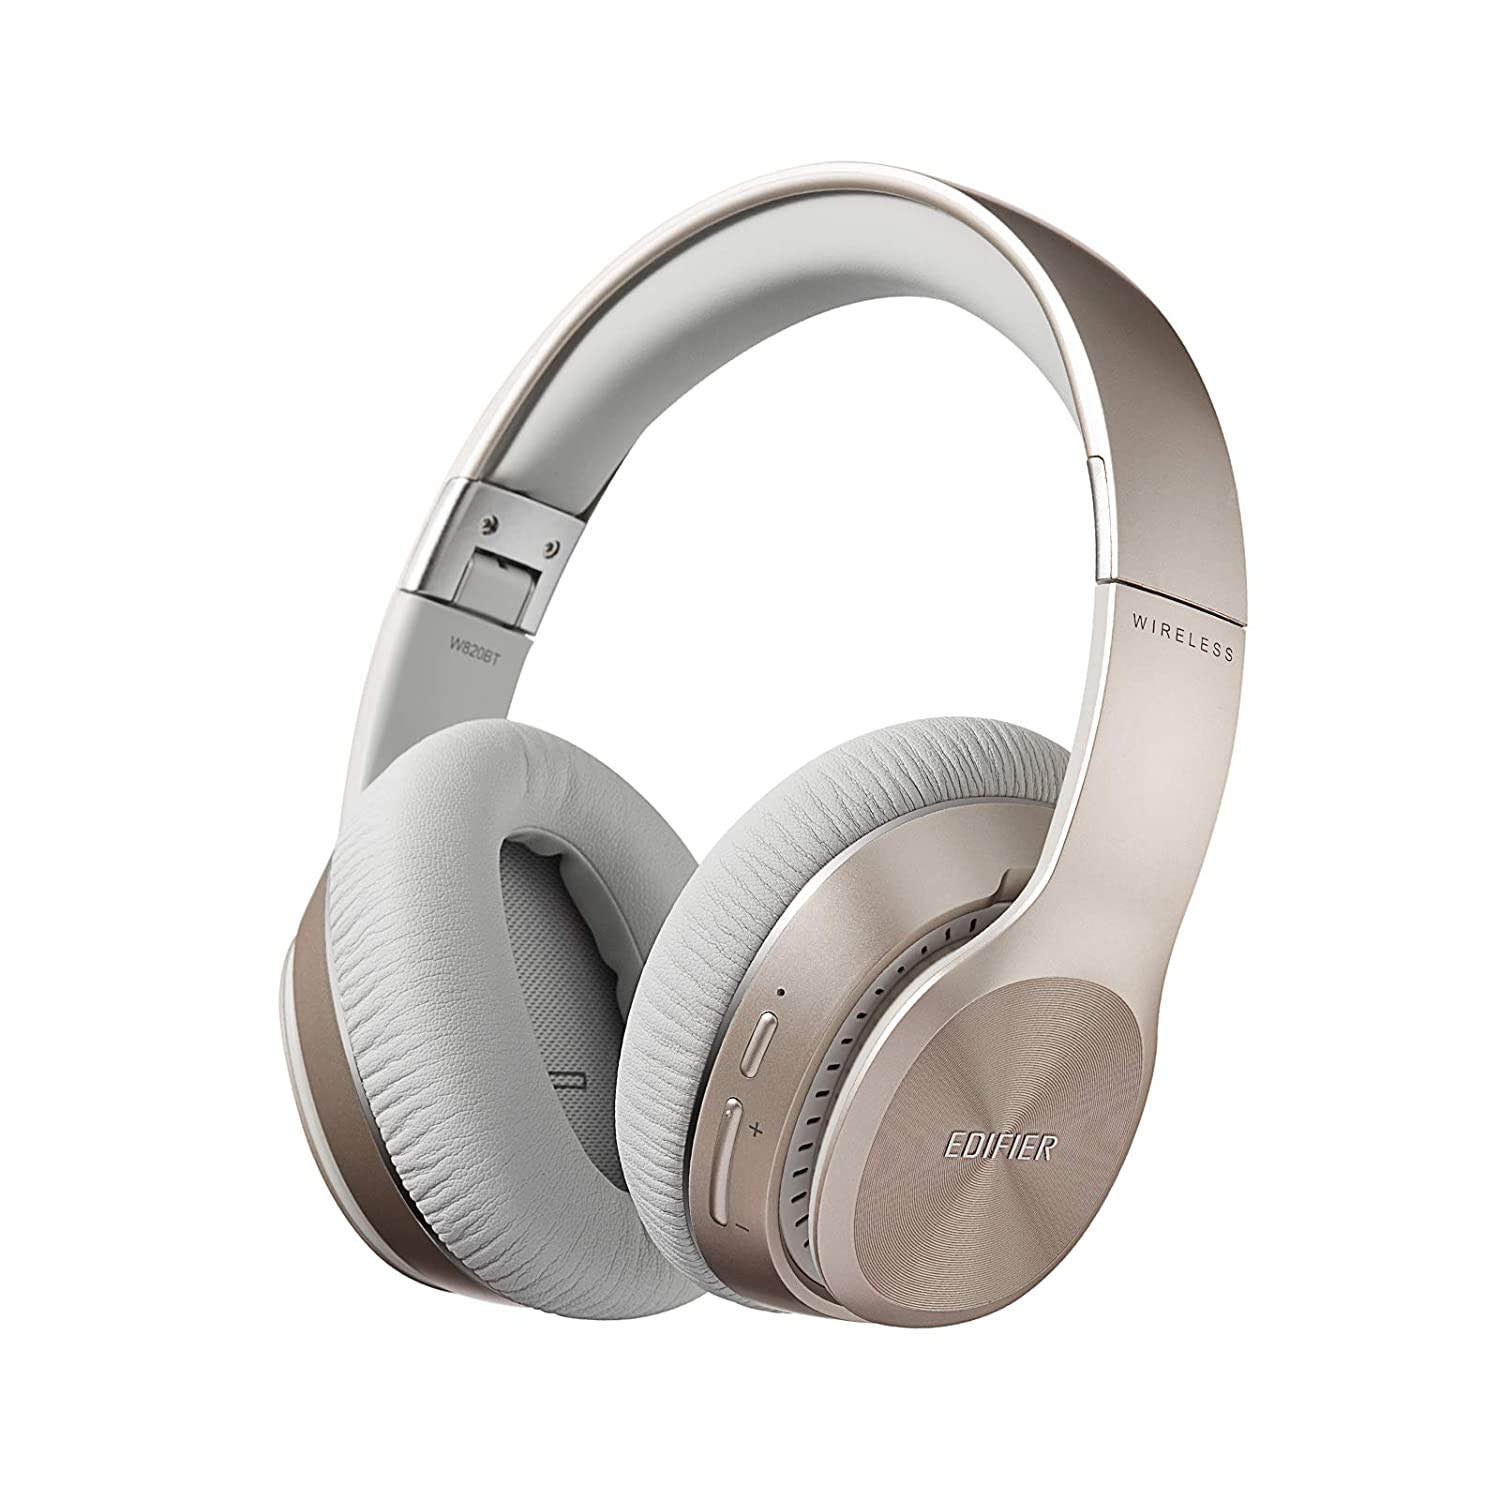 Edifier W820BT Bluetooth Headphones - Foldable Wireless Headphone with 80-Hour Long Battery Life - Gold